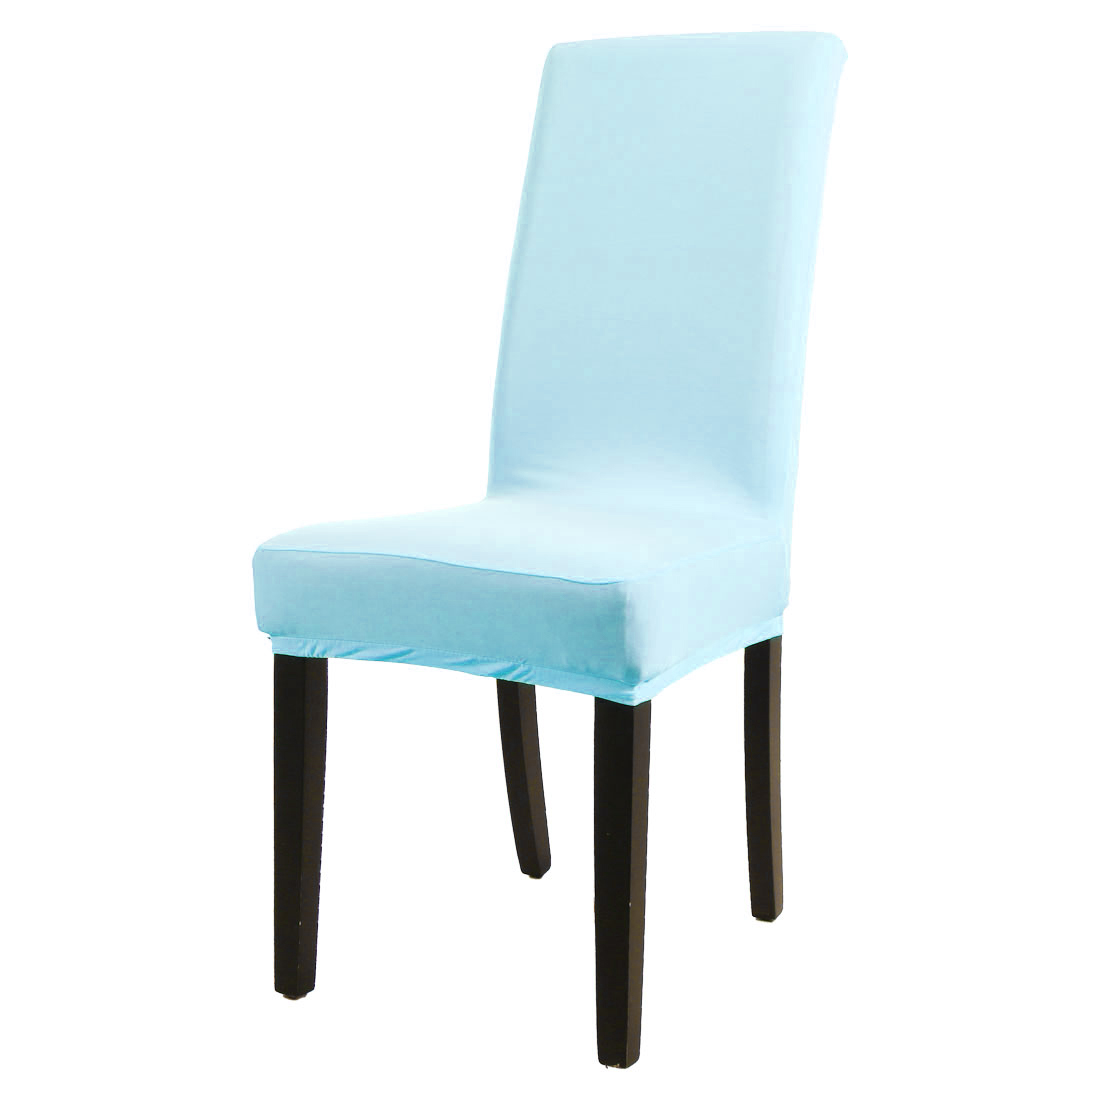 Spandex stretch washable dining chair cover protector seat slipcover sky blue